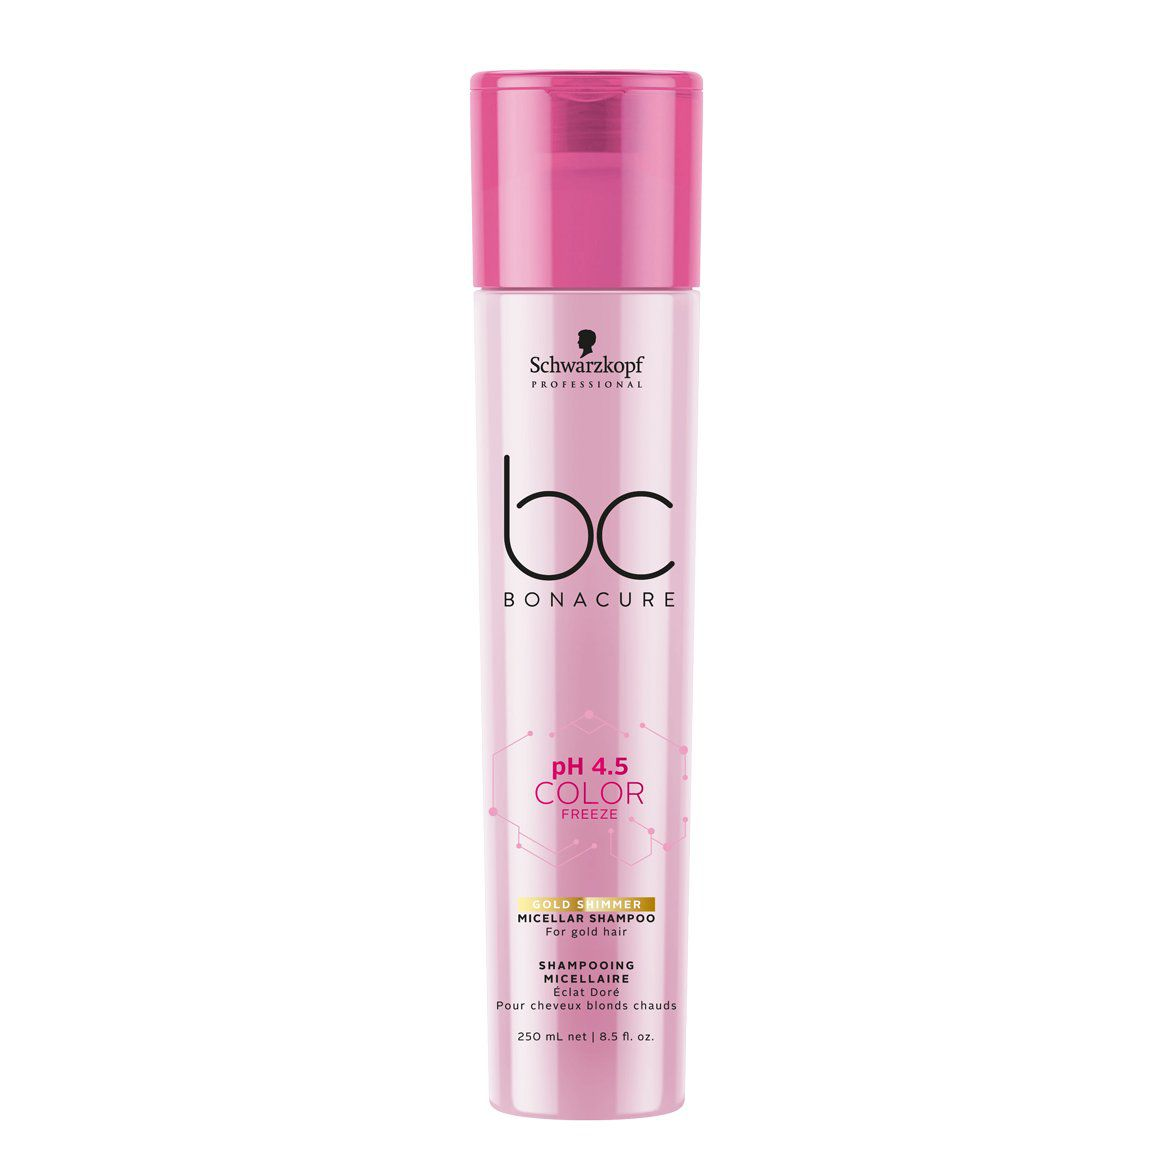 Schwarzkopf Professional - BC Bonacure - pH 4.5 Color Freeze - Shampoo Micelar Gold 250 ml